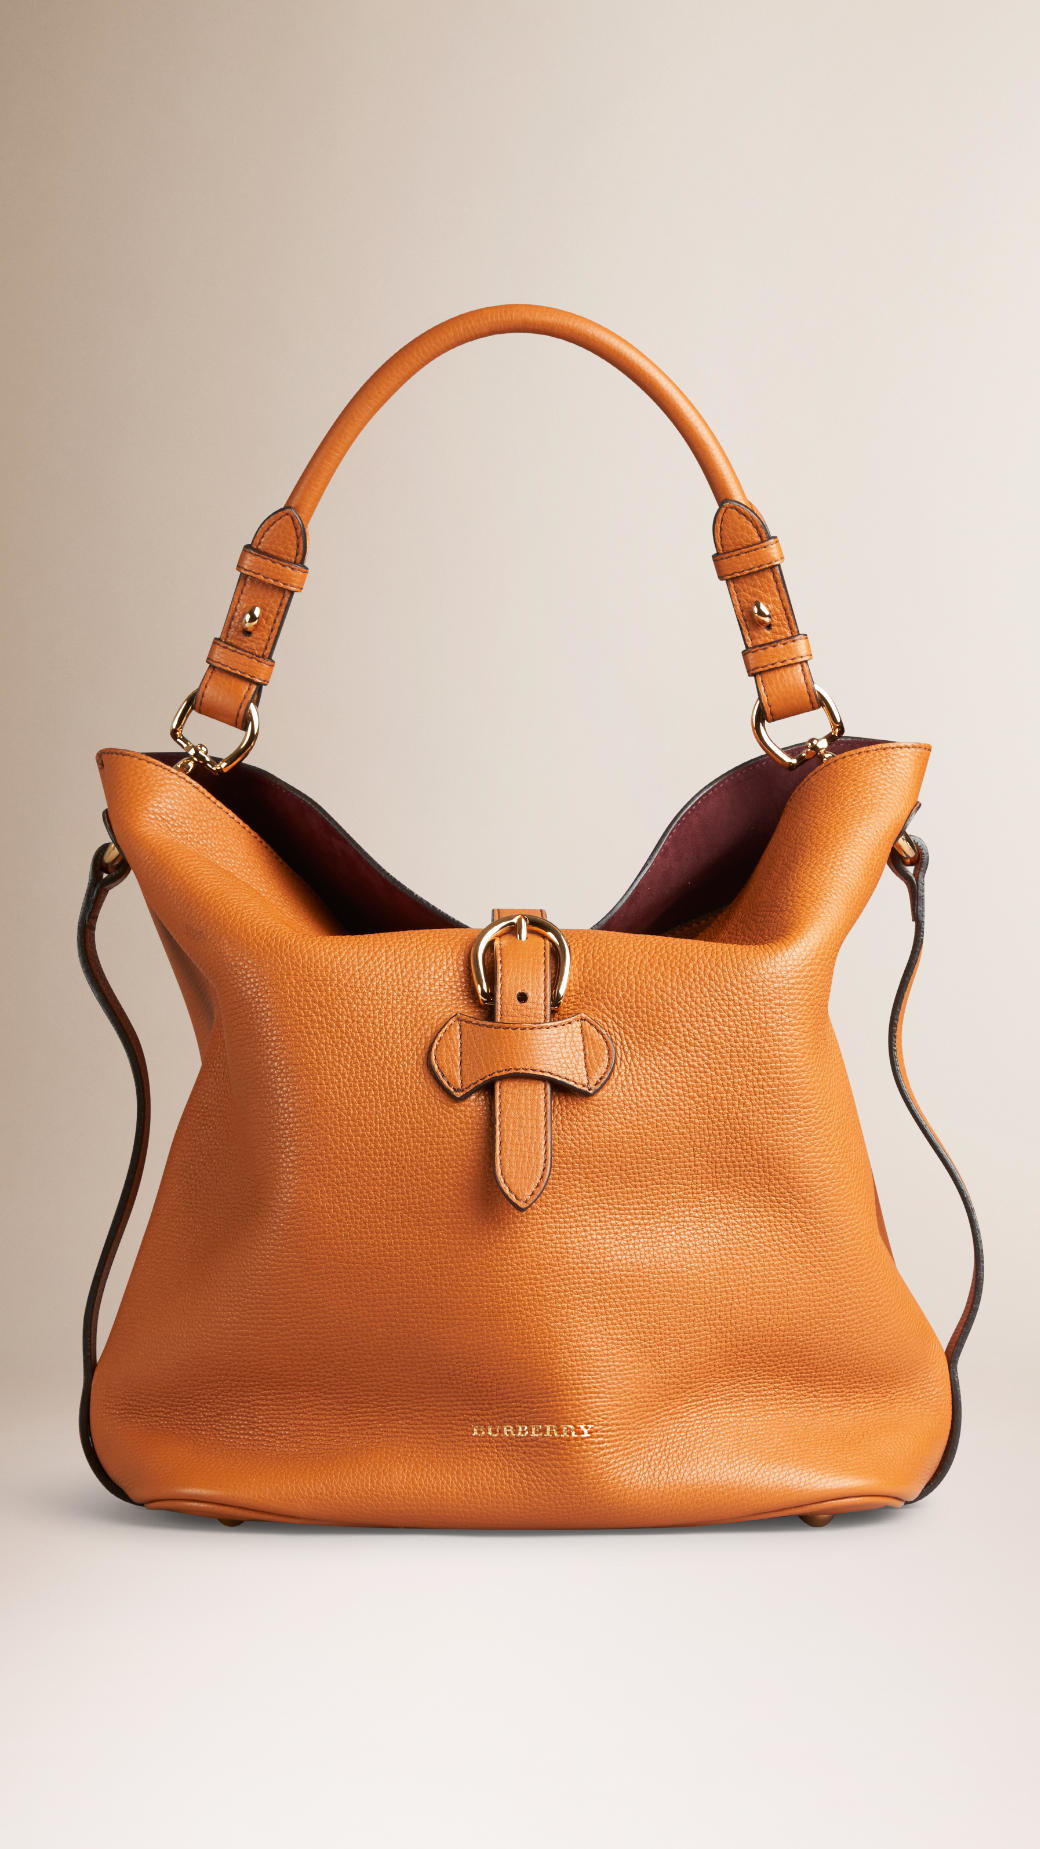 Burberry Medium Buckle Detail Leather Hobo Bag in Brown | Lyst